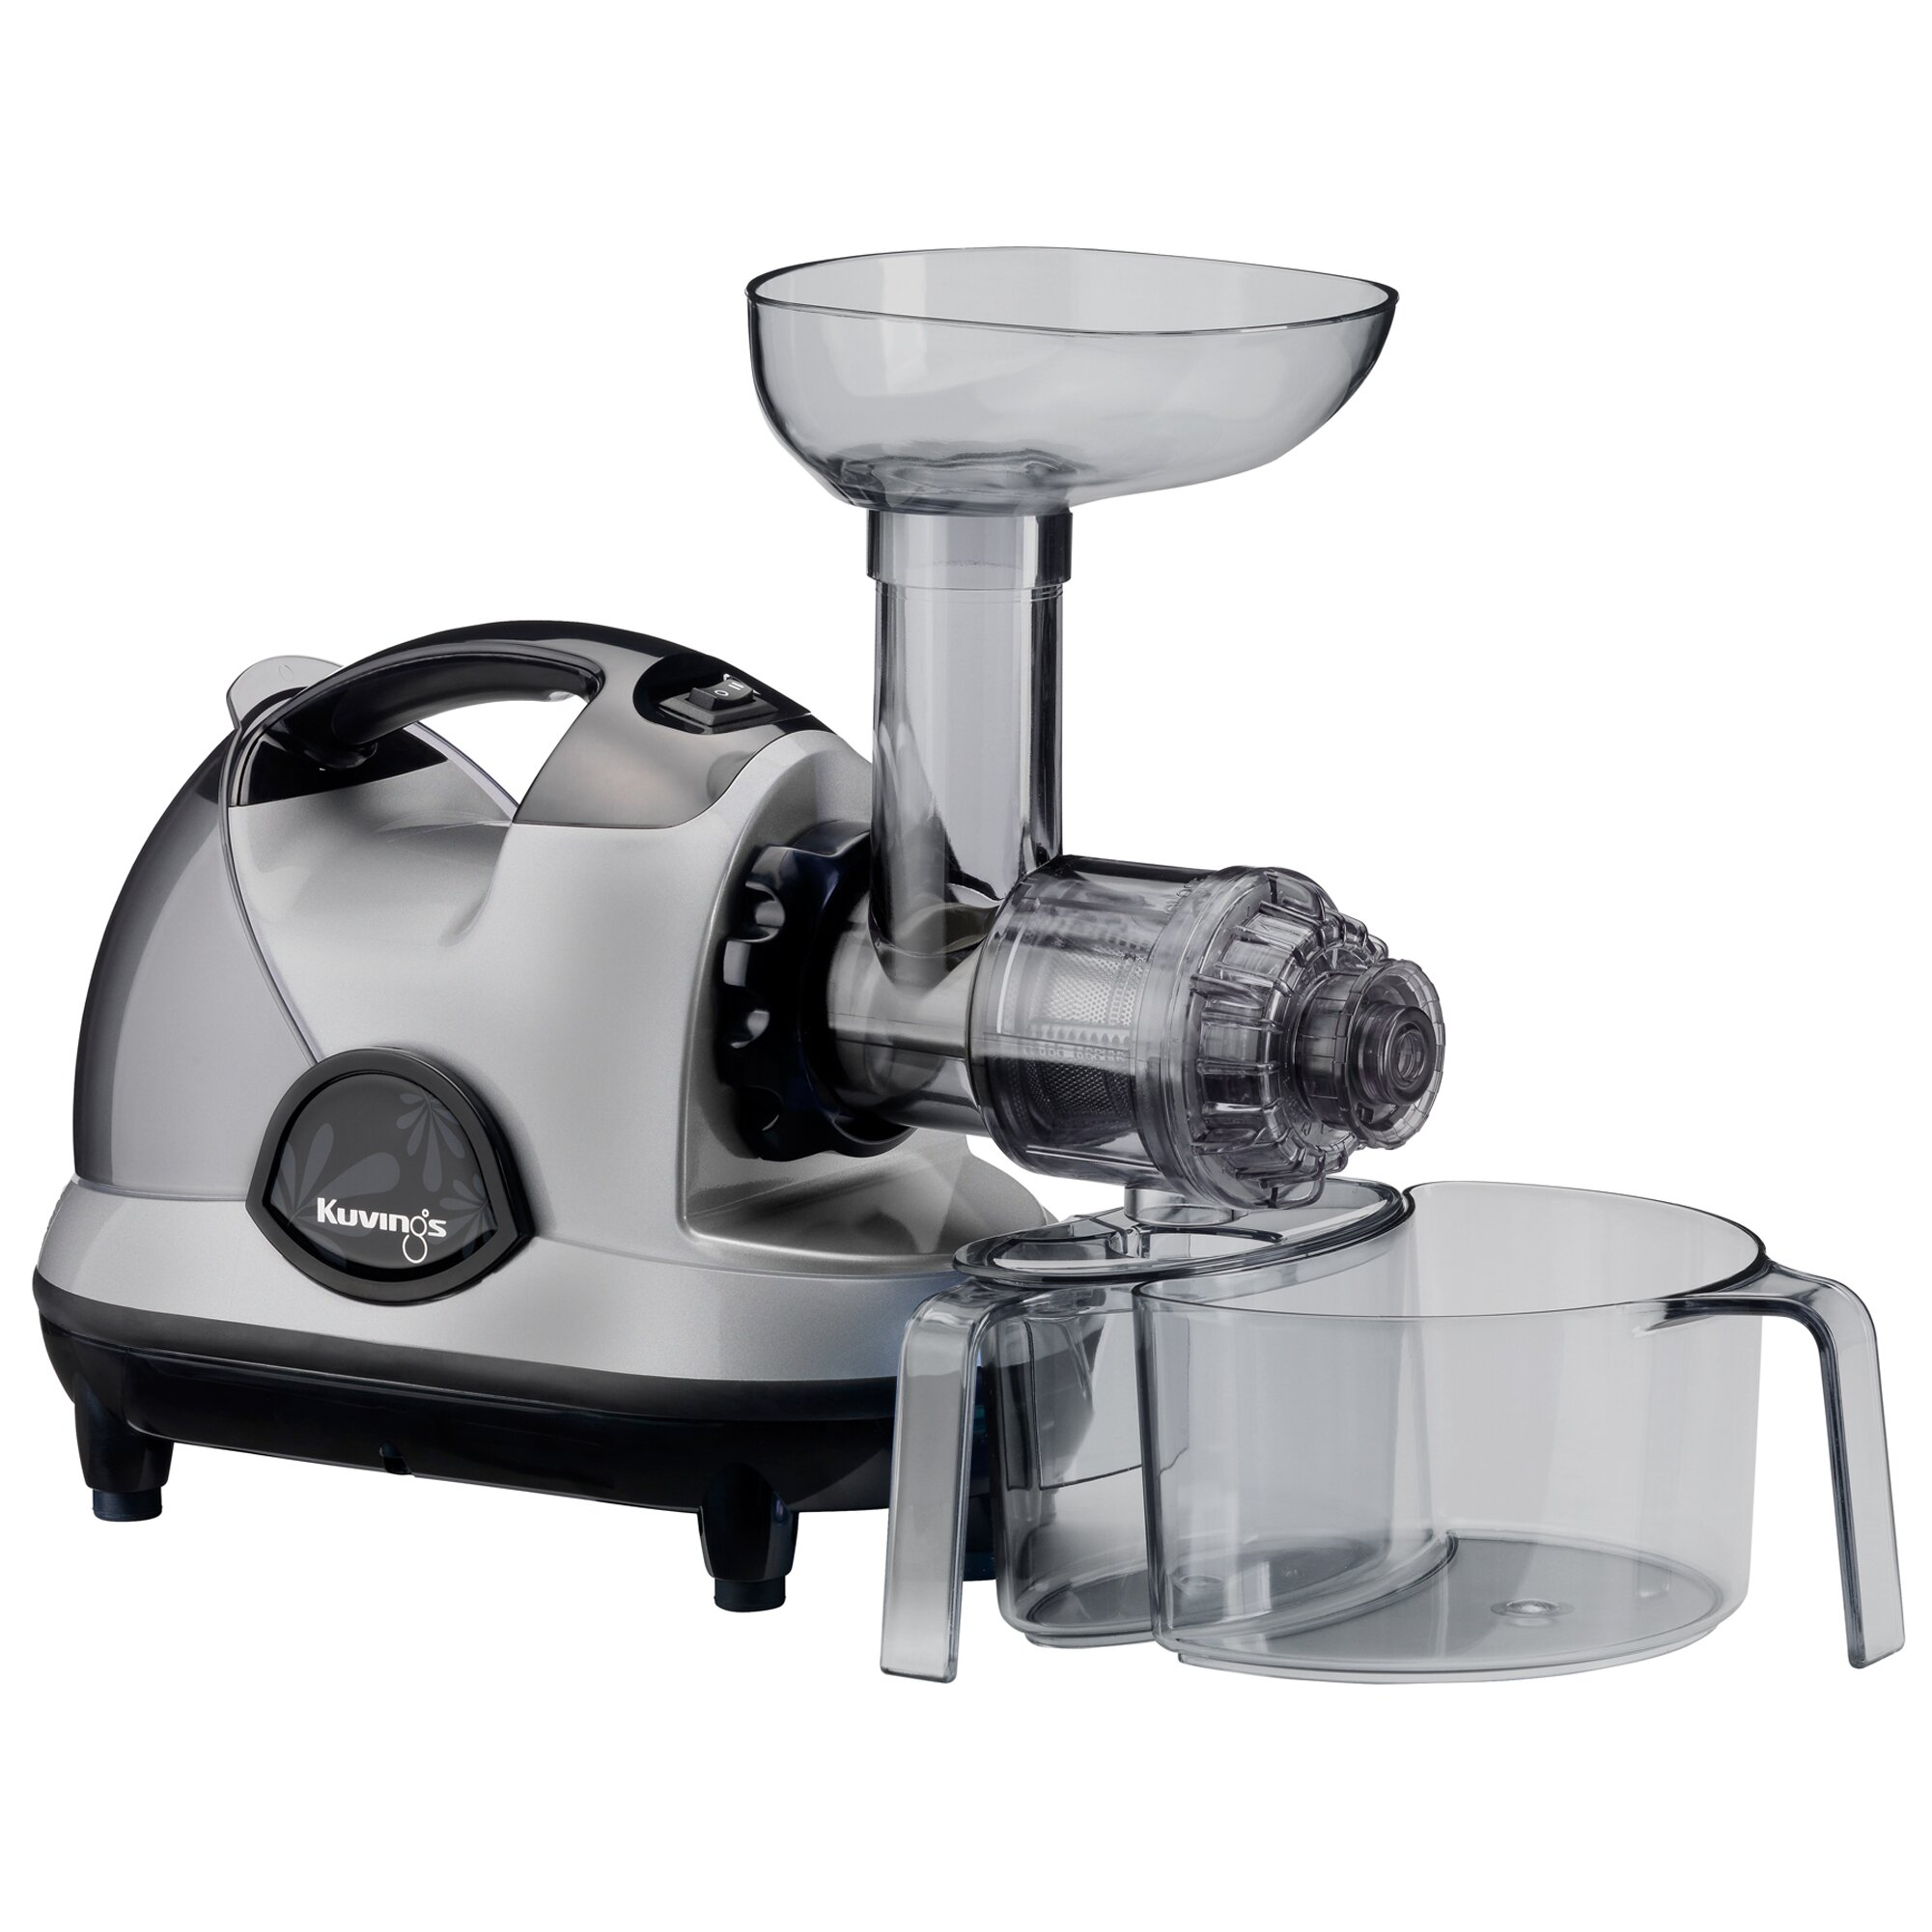 Top Slow Juicer Reviews : KUvINGS Multi-Purpose Slow Juicer & Reviews Wayfair